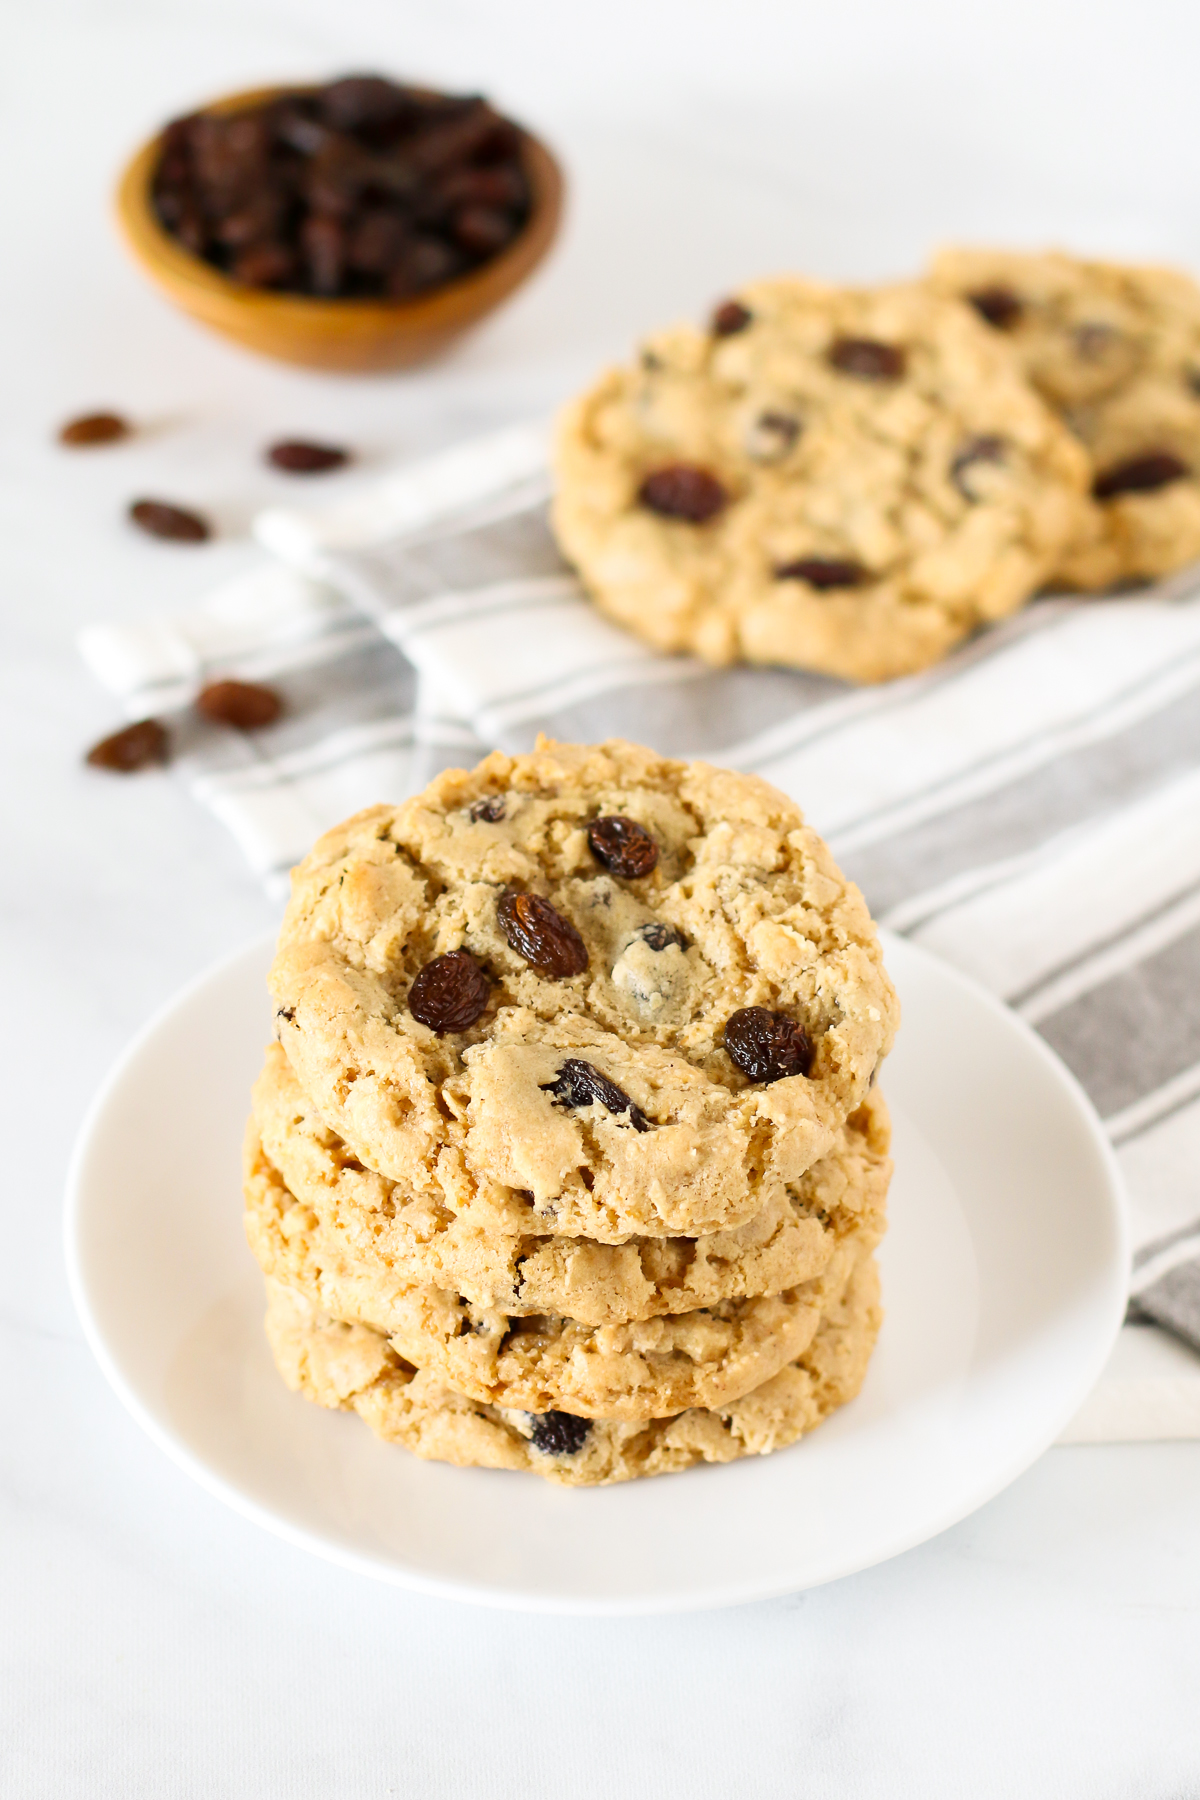 Gluten Free Vegan Oatmeal Raisin Cookies. Chewy oatmeal cookies, loaded with sweet raisins. Can't go wrong with this classic cookie!